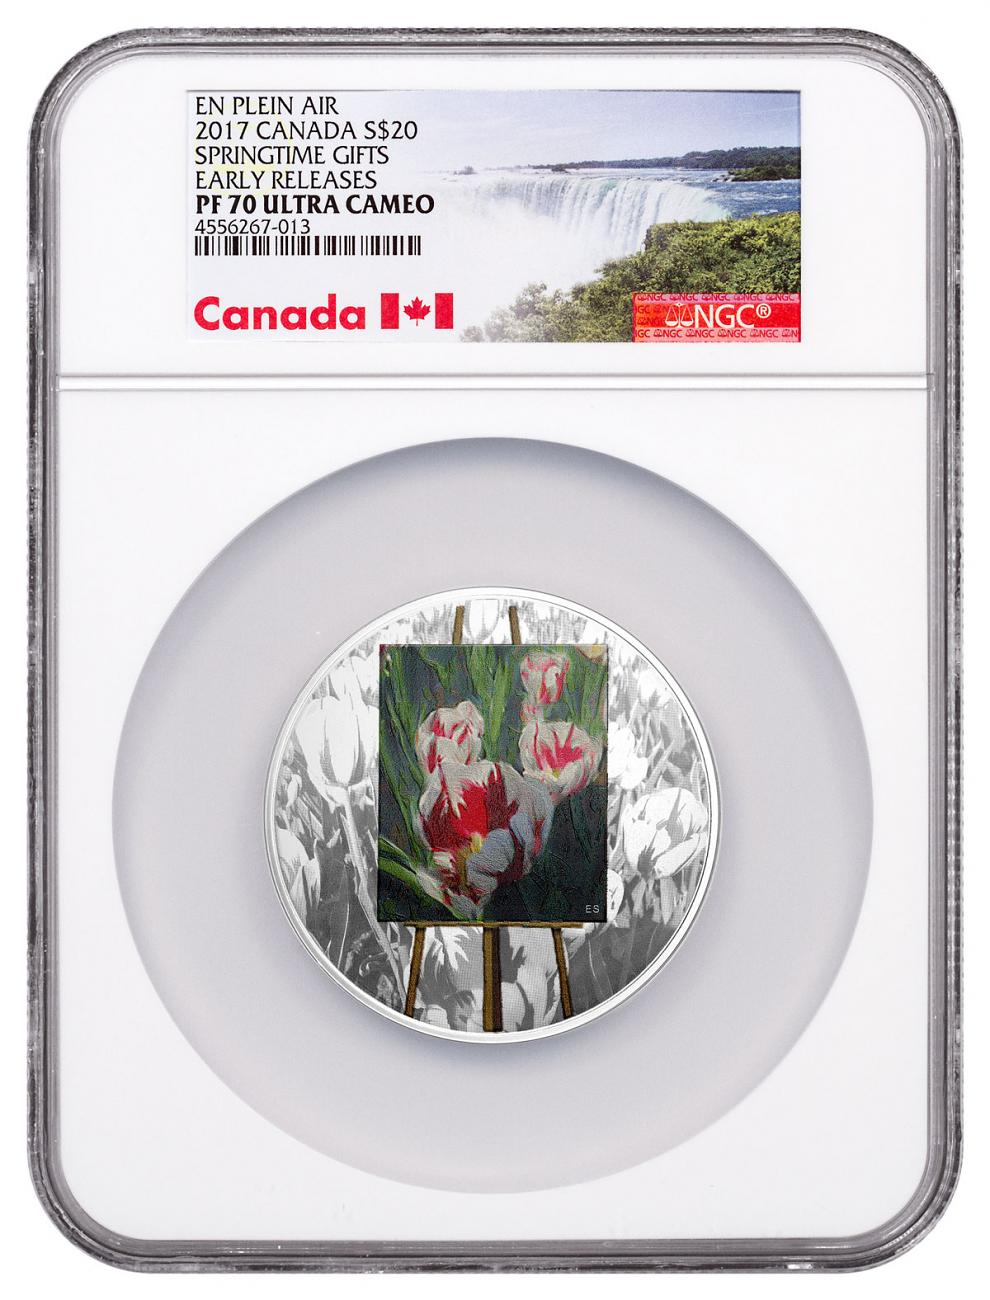 2017 Canada En Plein Air - Springtime Gifts 1 oz. Silver Colorized Proof $20 NGC PF70 UC ER (Exclusive Canada Label)